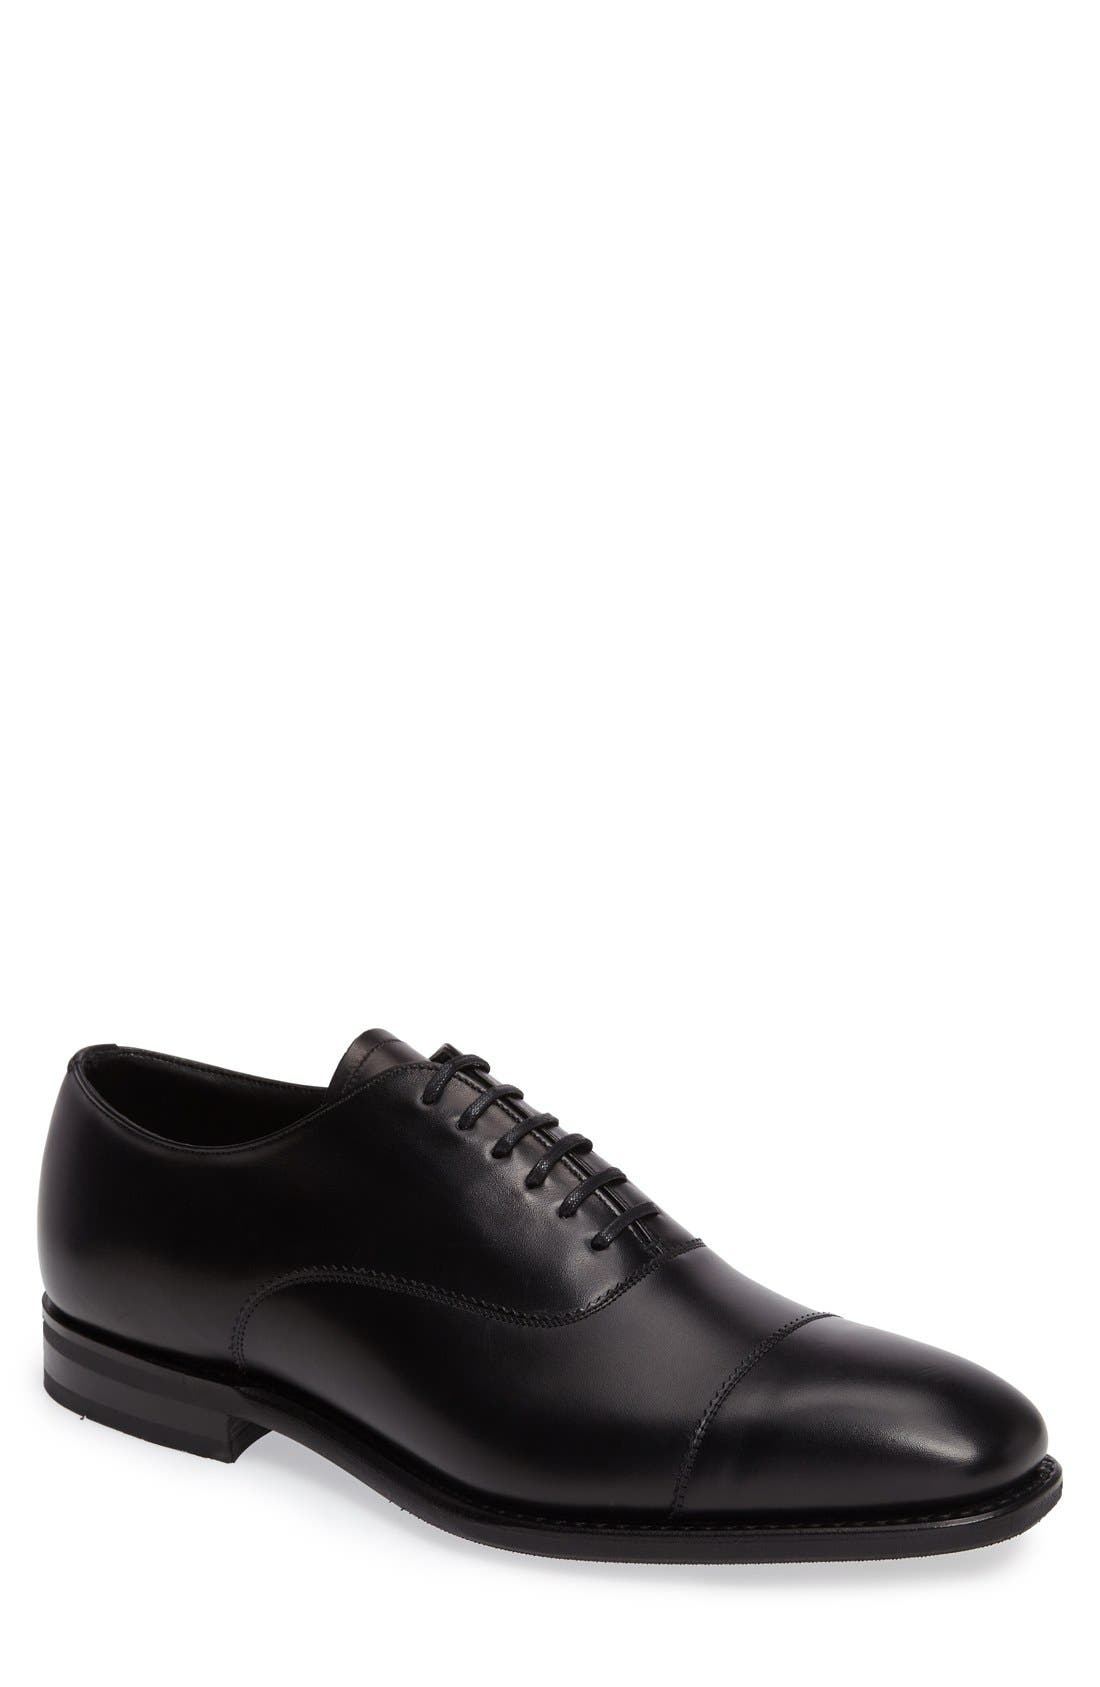 CHURCHS Pamington Cap Toe Oxford